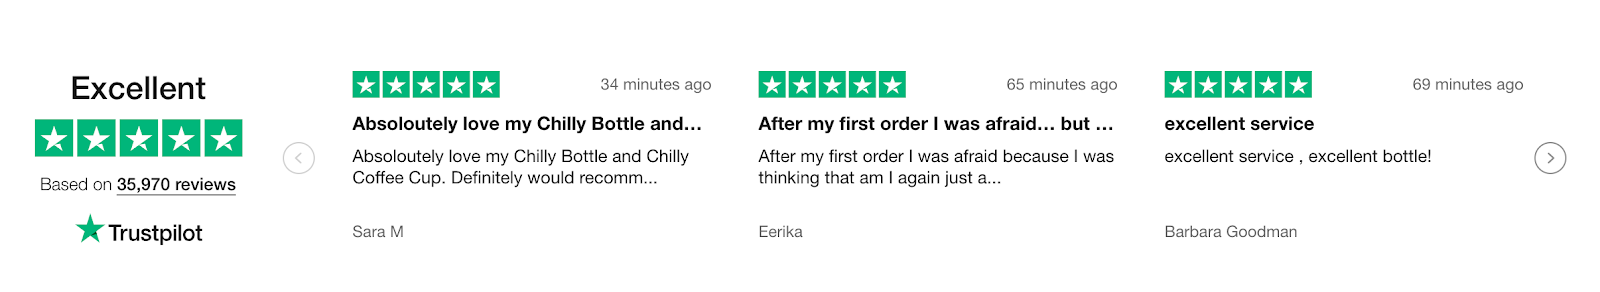 Screenshot of reviews on Chilly